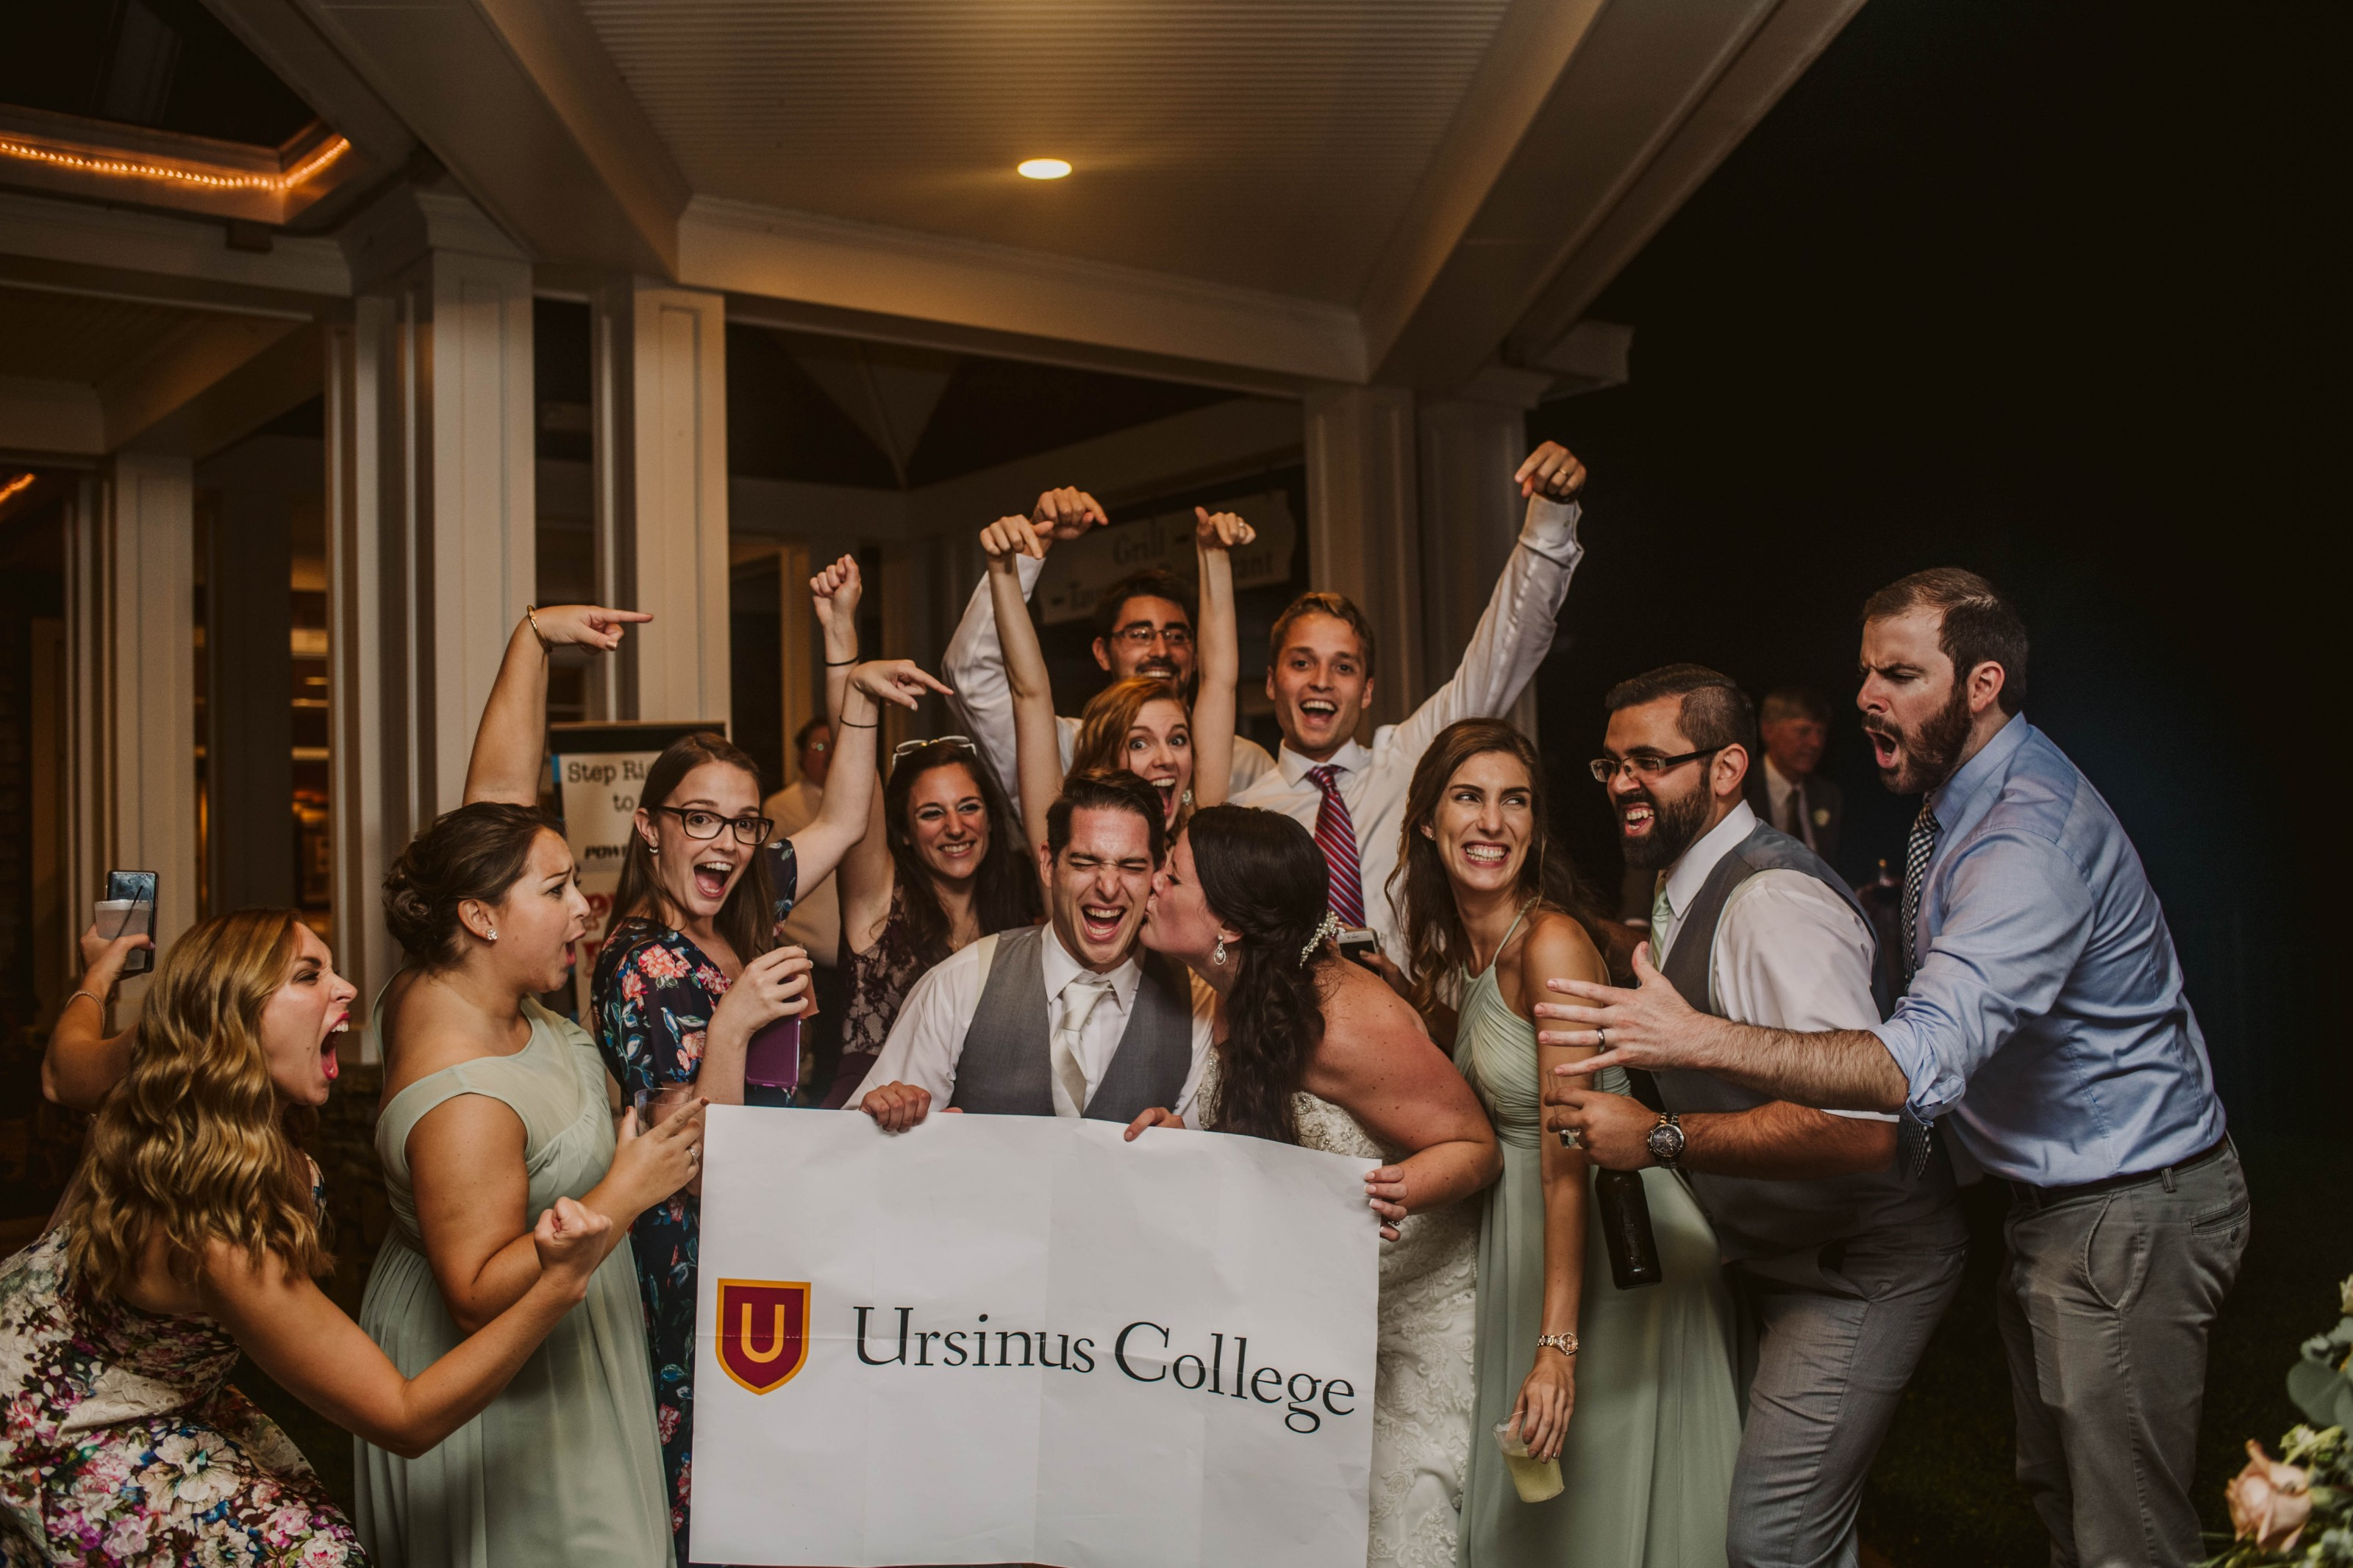 Jillian B. Alacci '13 and Adam McGonigle '13 were married on September 15, 2018.